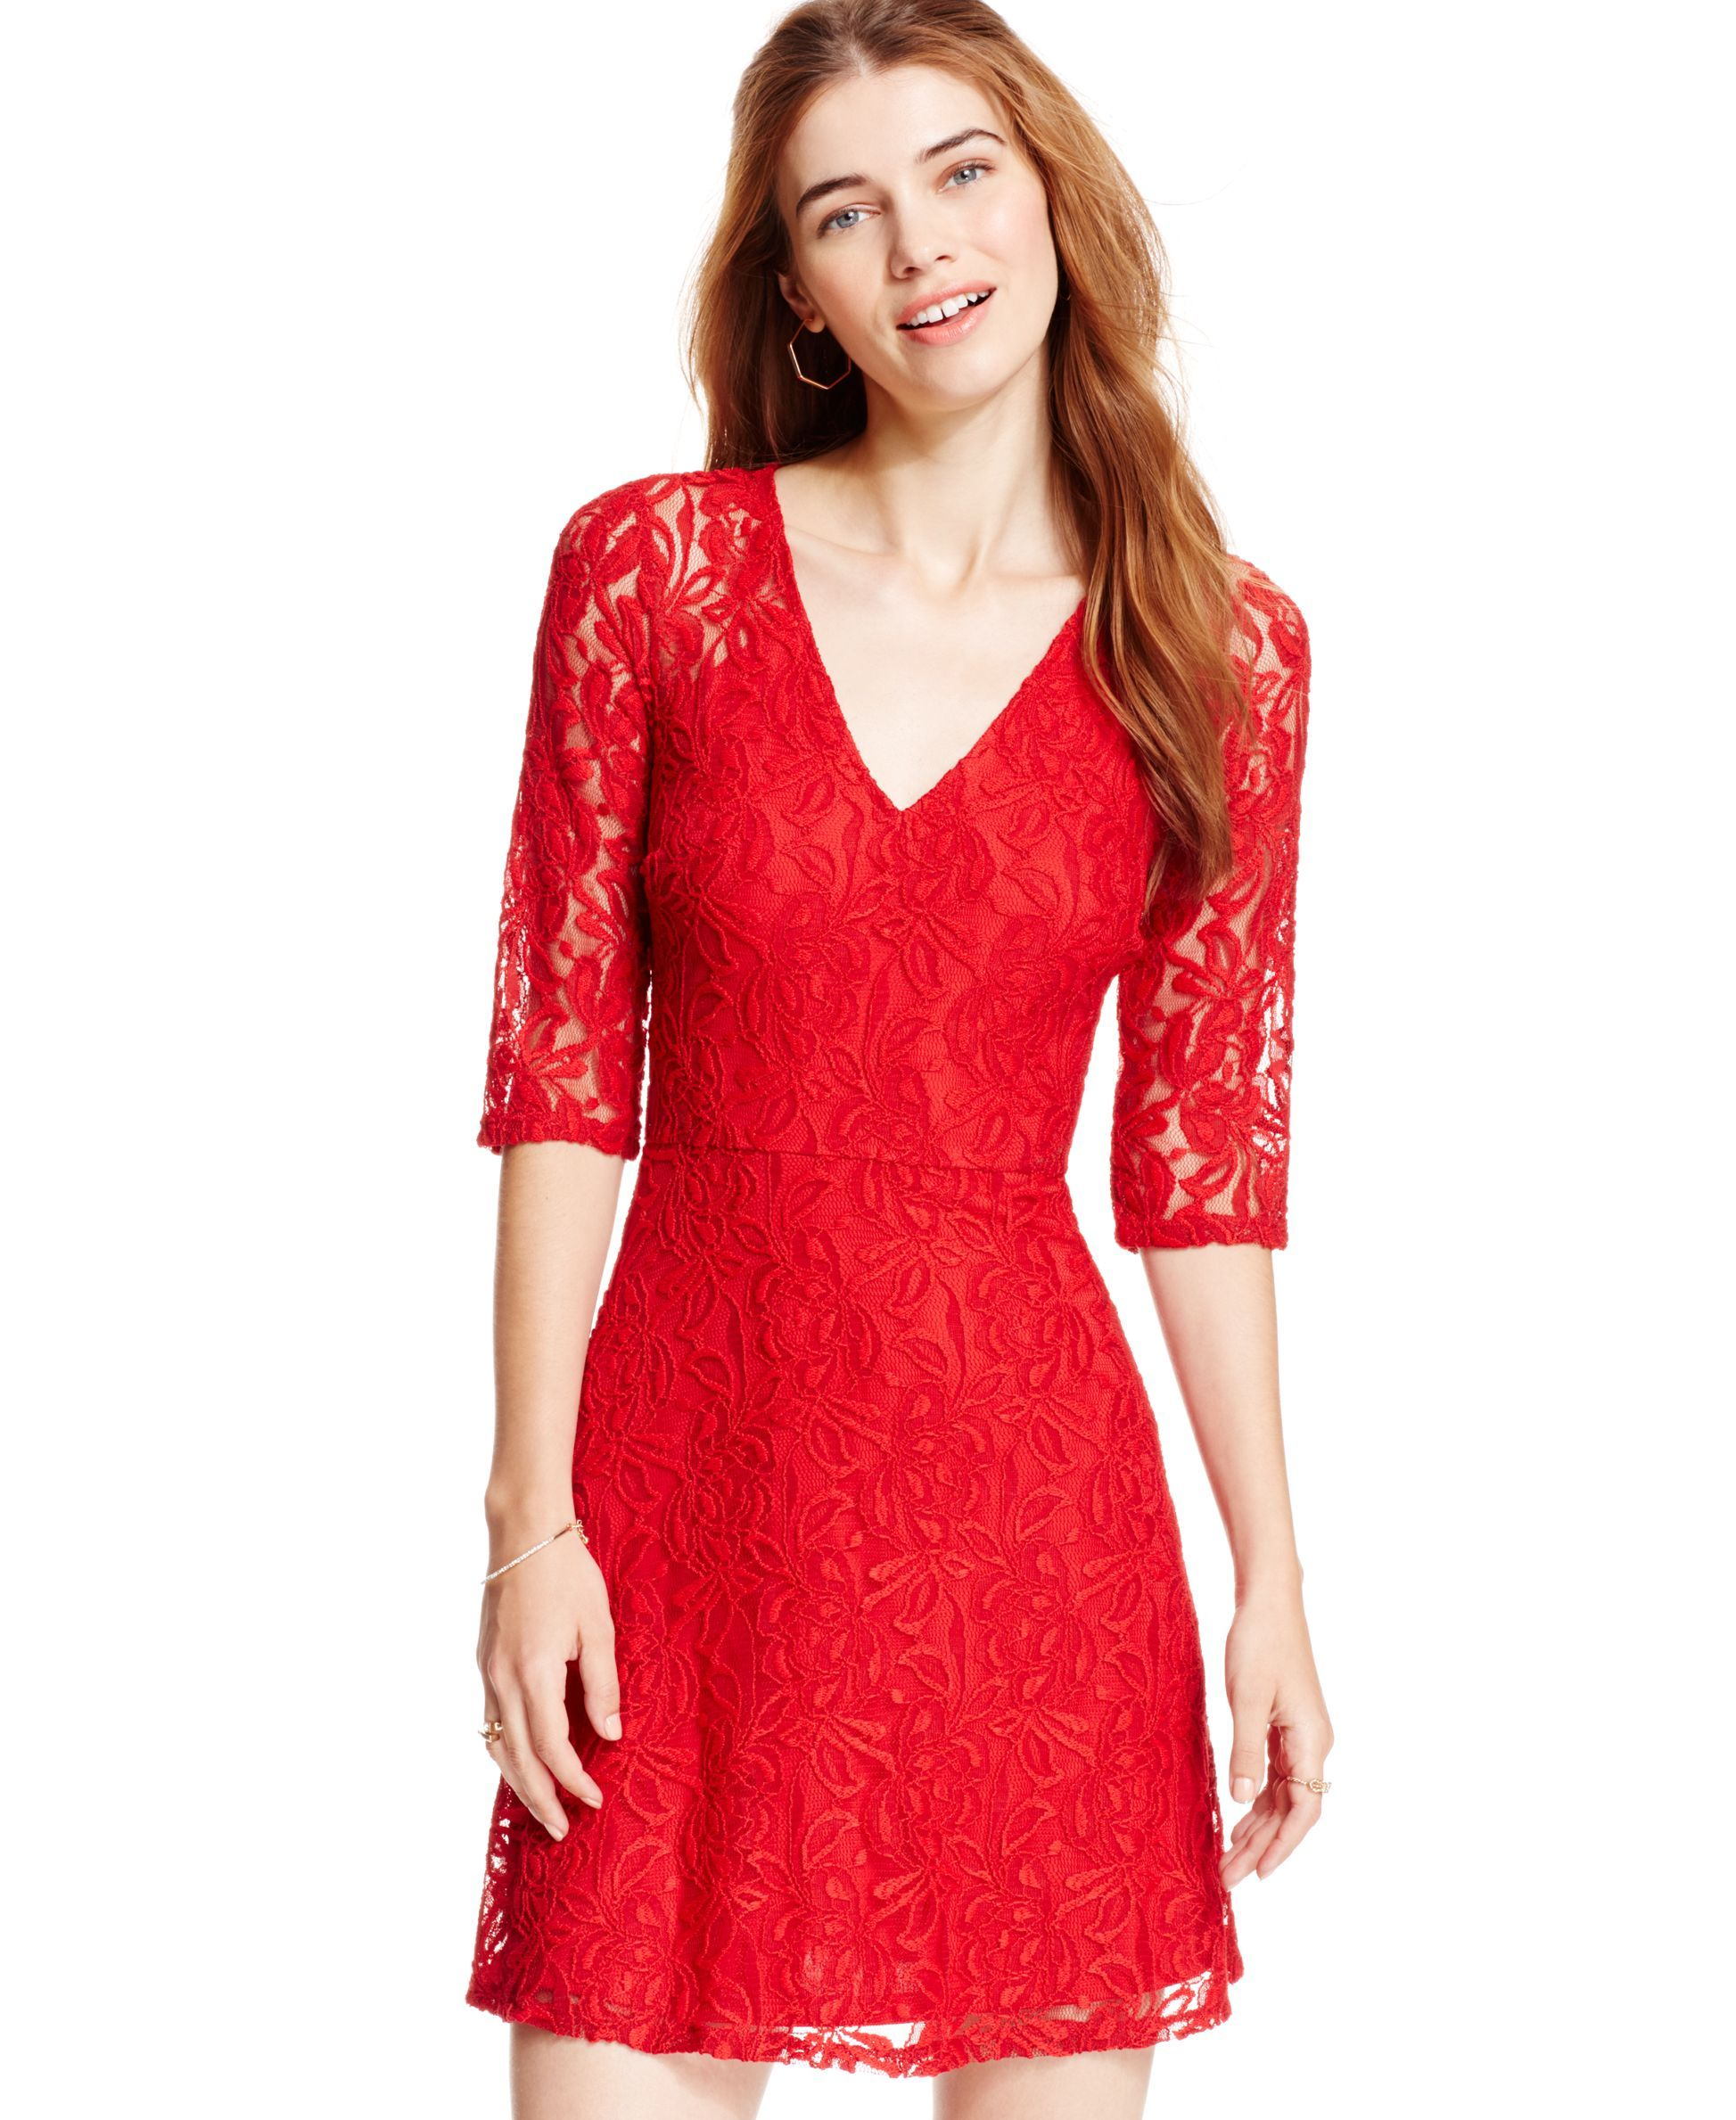 9f097d5989ce Macys Red Lace Dress – DACC